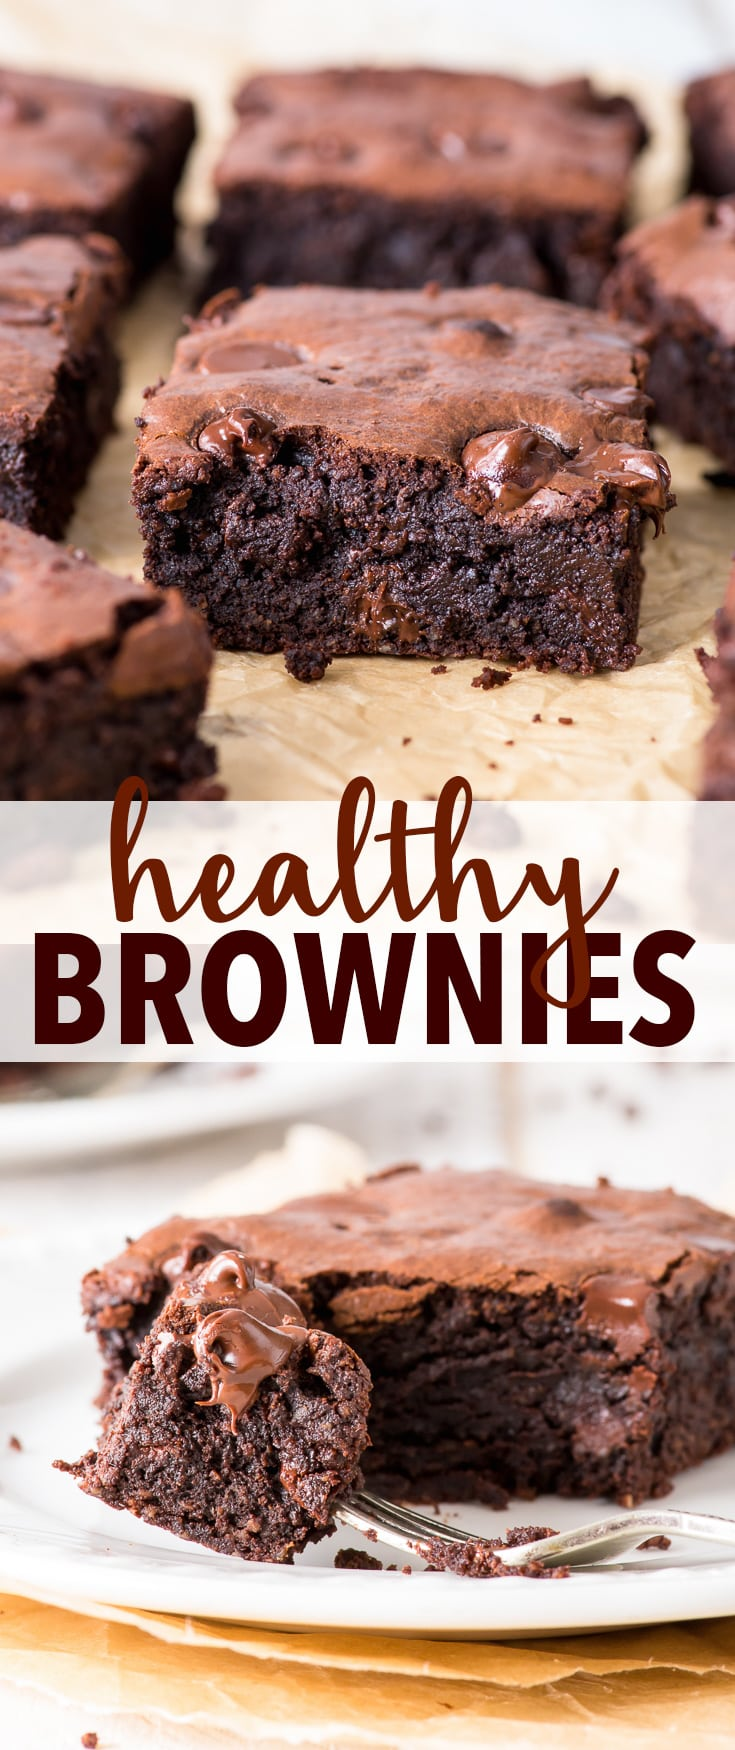 Super Fudgy Healthy Brownies (Gluten Free, Grain Free, Dairy Free, Paleo) - These healthy brownies have it all – the luscious fudgy texture, the intense chocolate flavour and they're easy to make! Plus, they're gluten, grain and dairy free, as well as paleo. Brownie recipe. Healthy recipes. Healthy food. Healthy dessert recipes. Paleo brownies. Grain free recipes. Fudgy brownies. Gooey brownies. Dairy free desserts. Gluten free desserts. Paleo desserts. Paleo recipes. #healthyrecipes #brownies